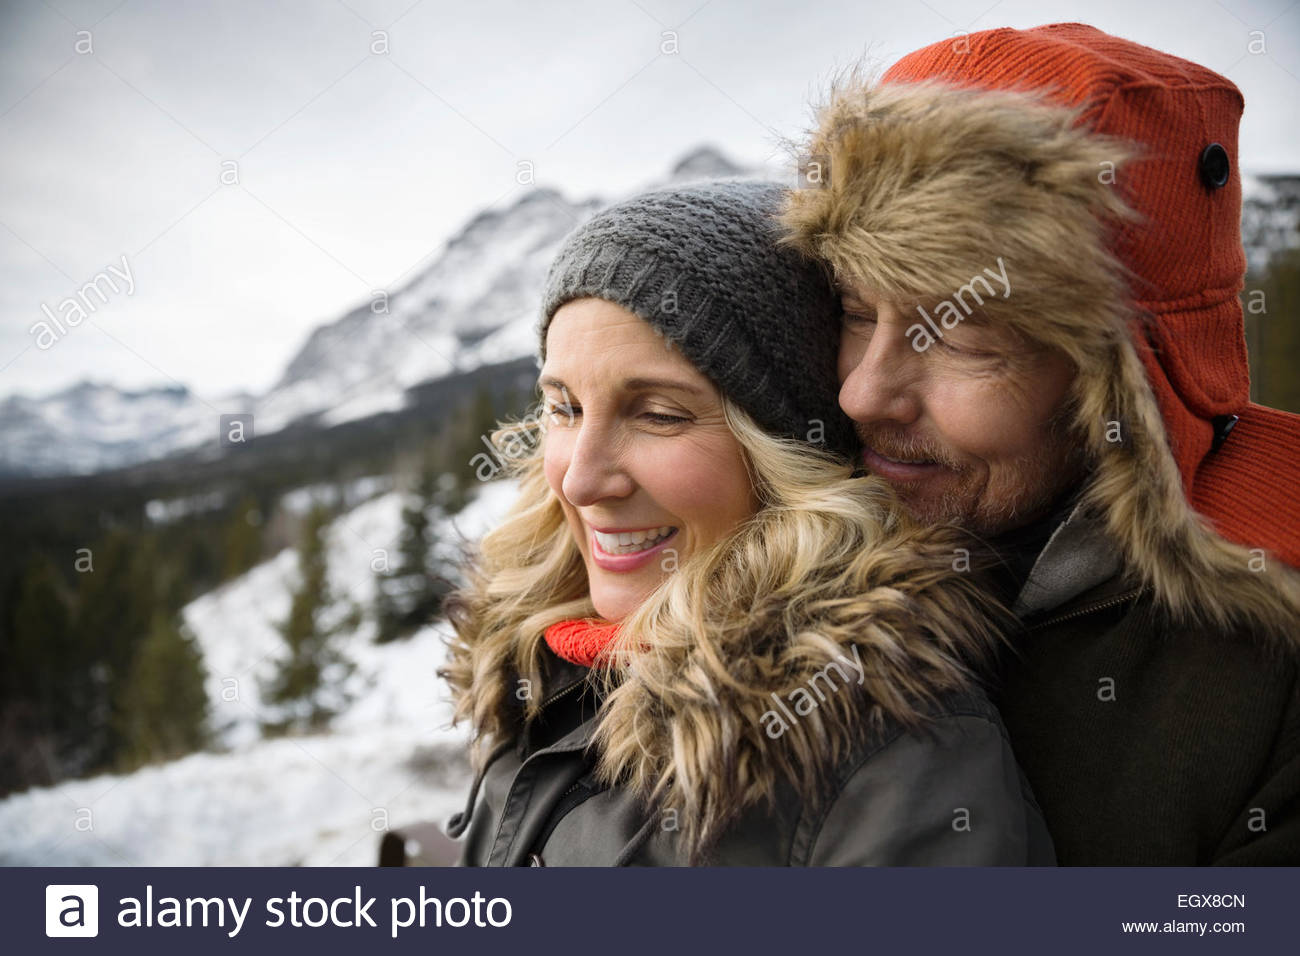 Couple in warm clothing hugging below snowy mountain - Stock Image